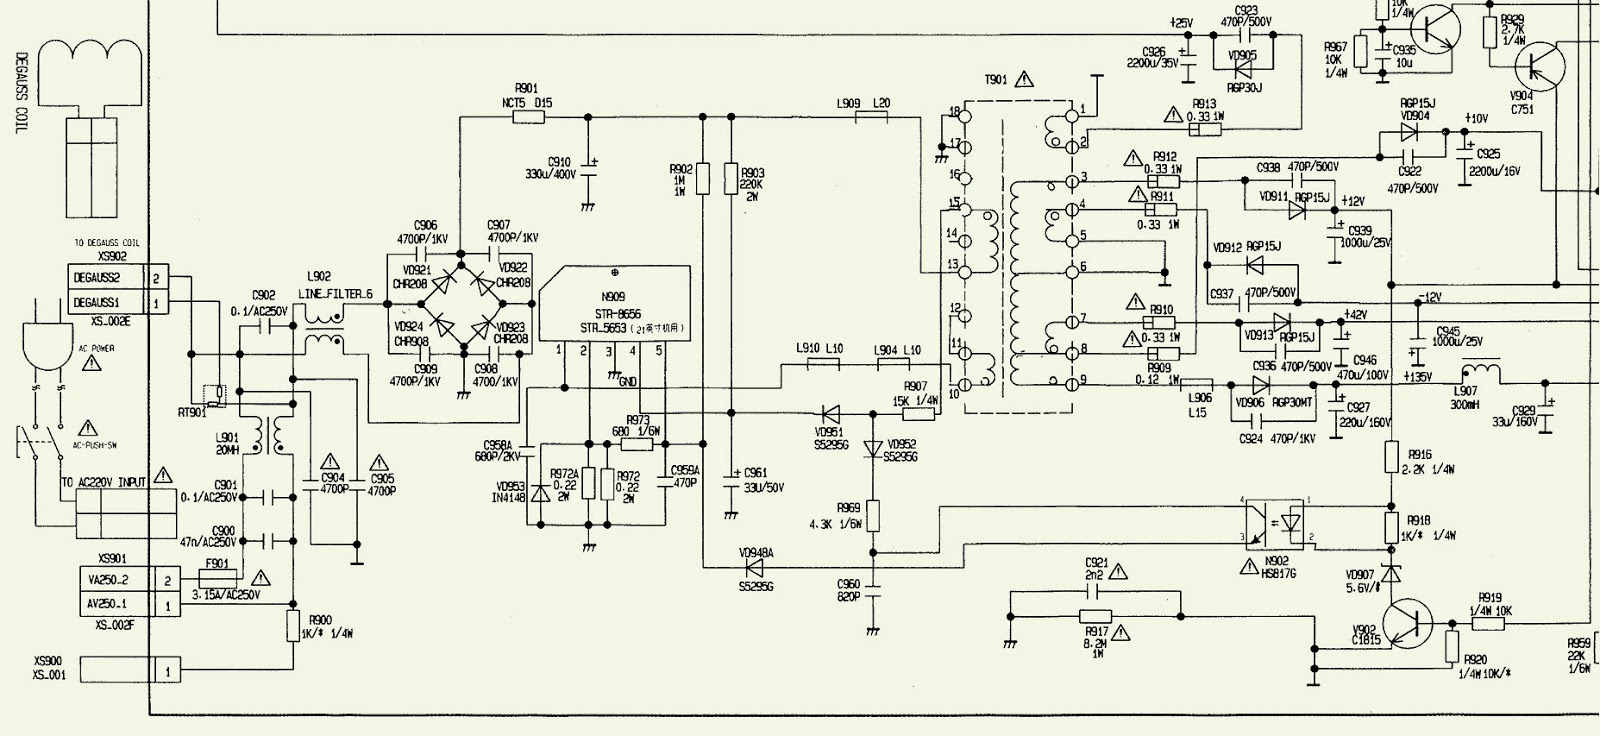 Watch additionally Wiring Harness Of Samsung Refrigerator furthermore Midea Air Cooled Screw Chillers 60202036856 in addition 99629 Geothermal Heat Pump Mod Con Boiler For Radiant Floor Heating further V3. on lg schematic diagrams